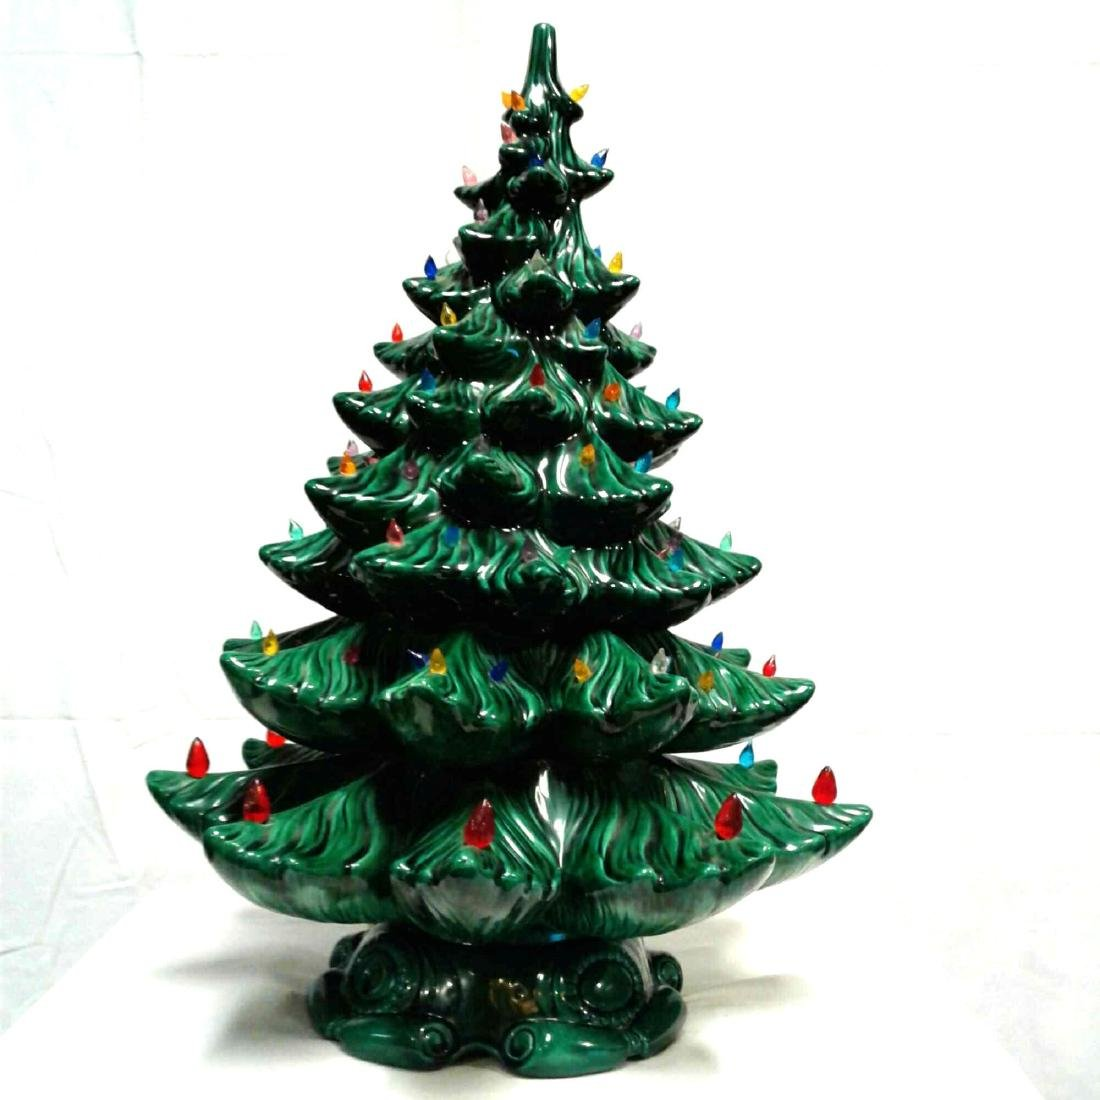 Vintage Ceramic Atlantic Mold Christmas Tree